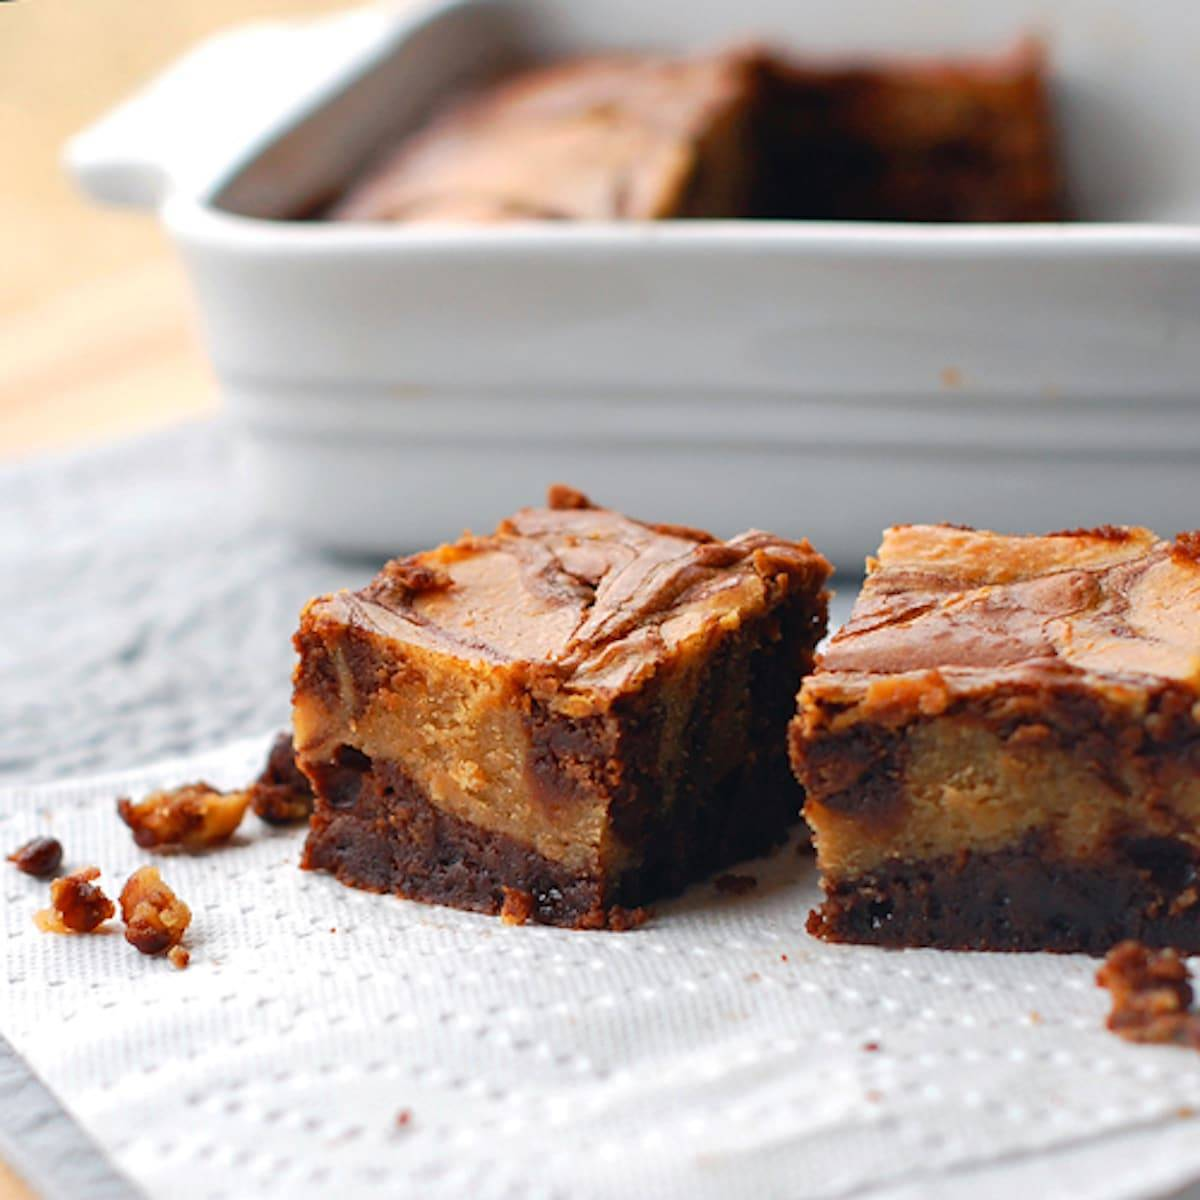 These peanut butter cheesecake brownies are so simple to make! Thick, rich, chocolate peanut butter cheesecake perfection. | pinchofyum.com